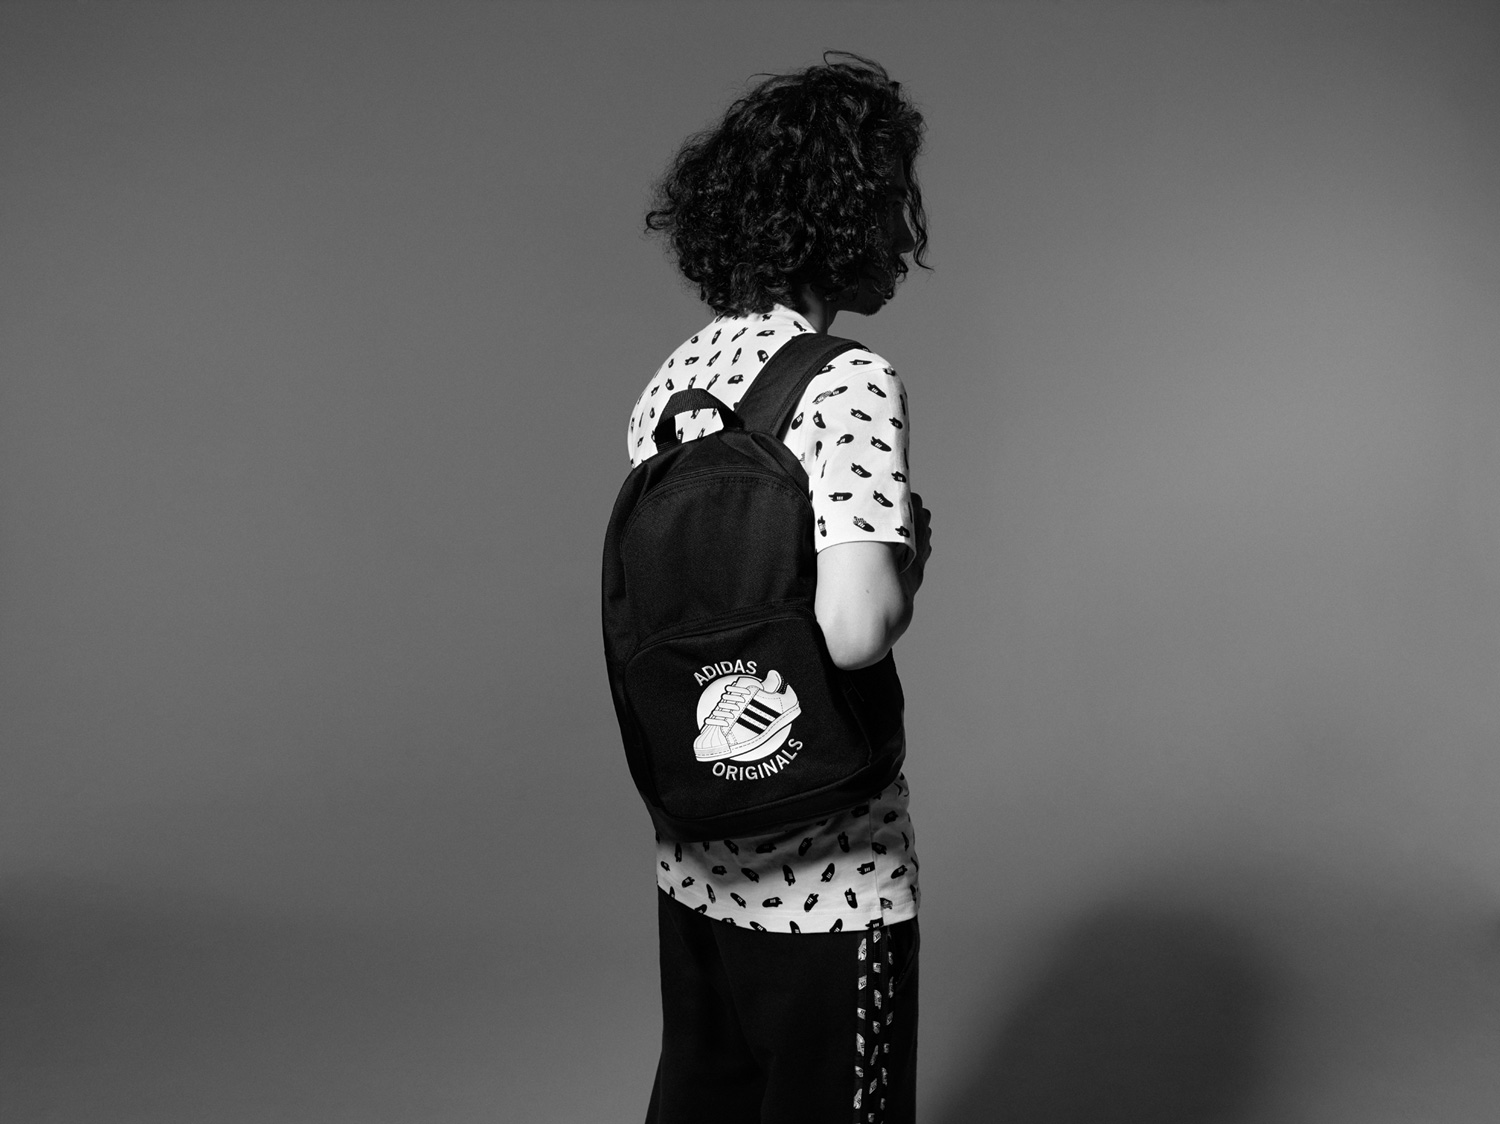 adidas-originals-shelltoe-apparel-capsule-collection-08